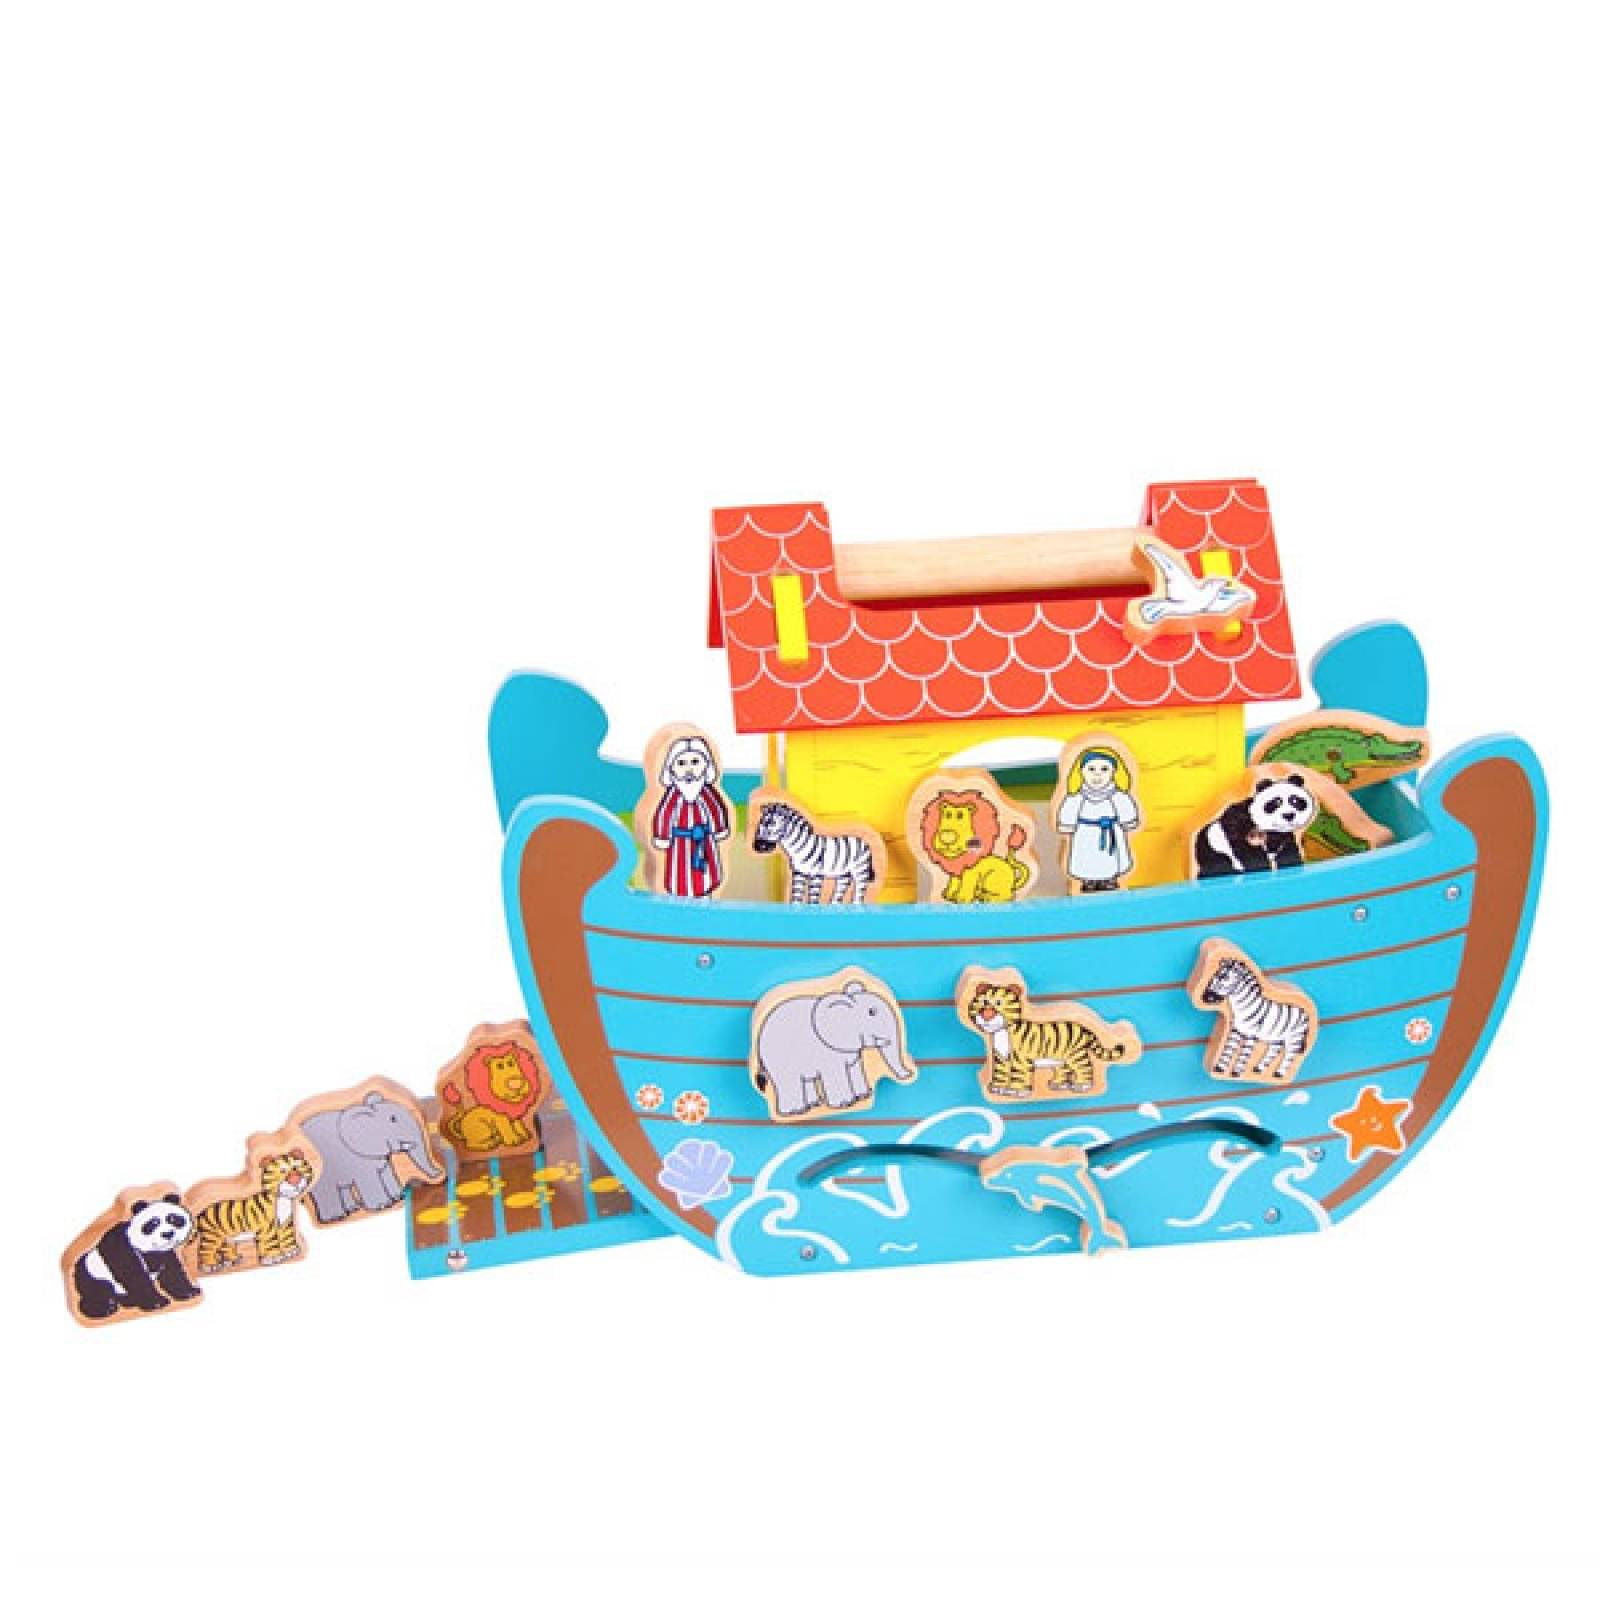 Wooden Noahs Ark With Shape Sorter Sides thumbnails